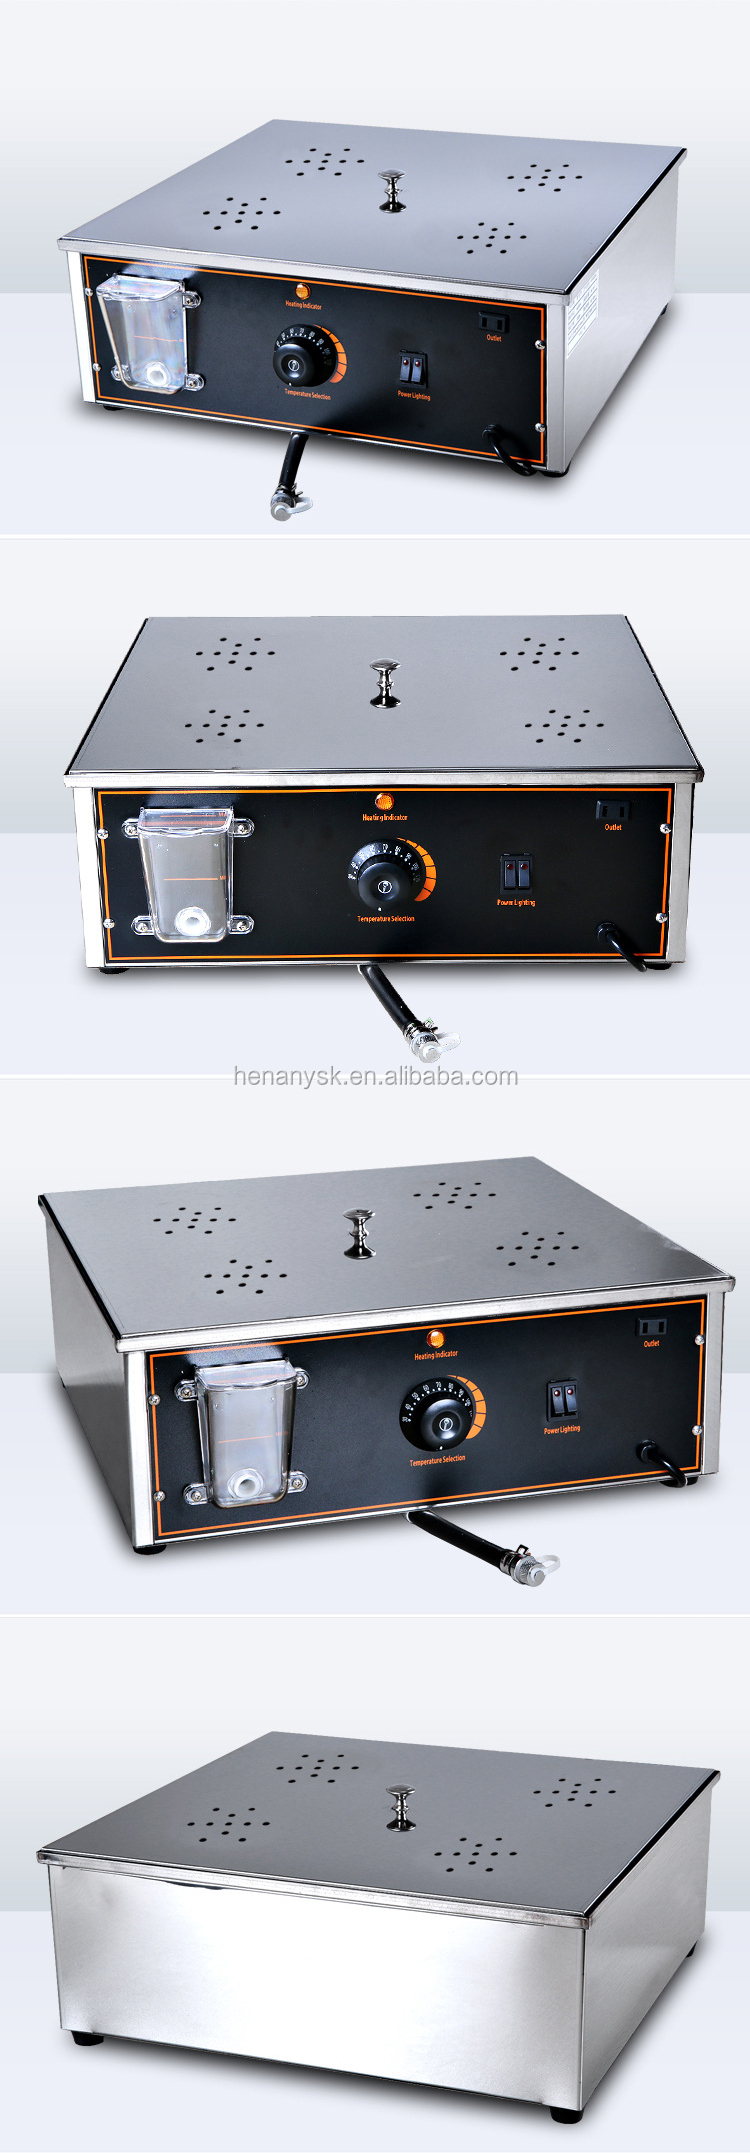 Commercial Electric Desktop Steamed Stuffed Bun Furnace Small Steamer Four Hole Steam Furnace